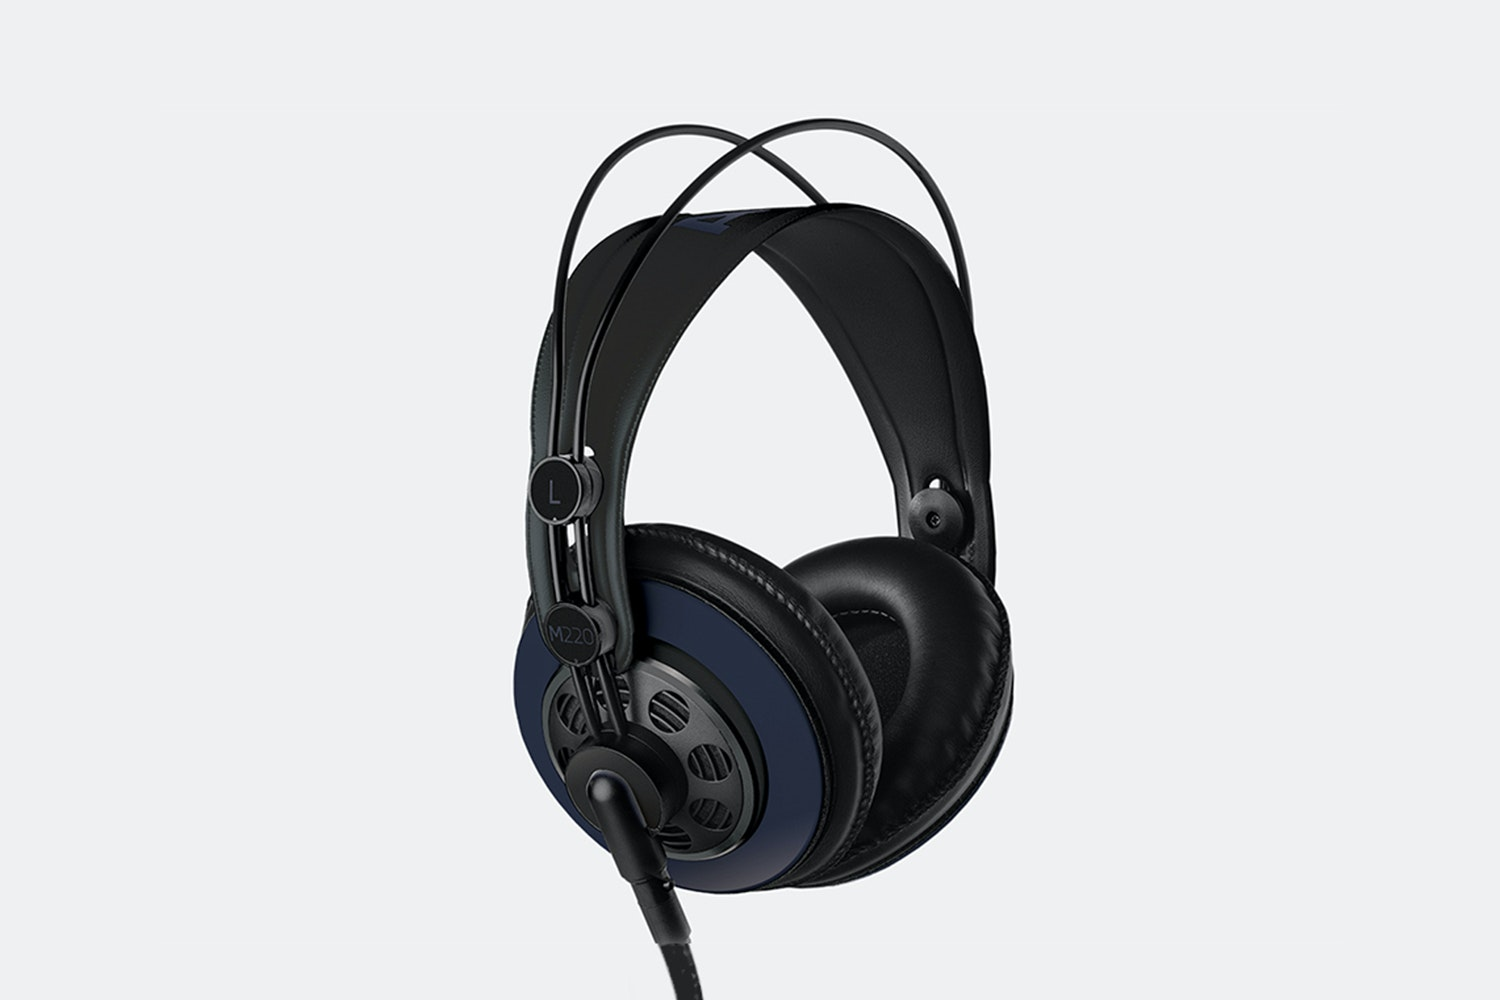 Massdrop x AKG M220 Pro headphones in blue